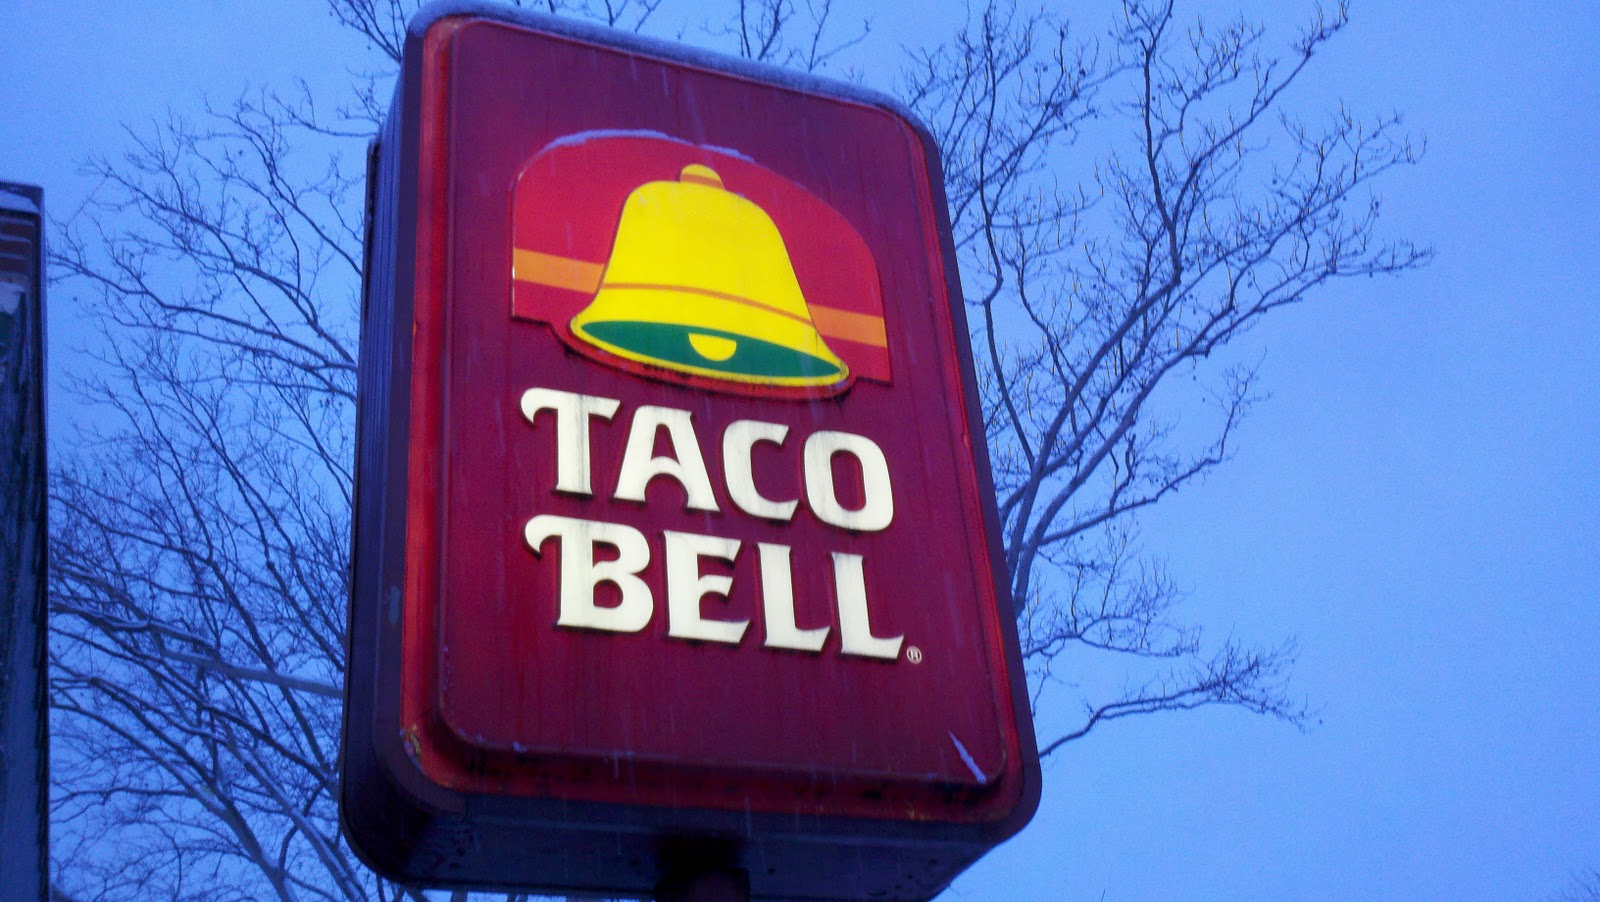 taco bell performance management What performance bonus benefit do taco bell employees get taco bell  gm  elected to share her bonus with shift managers, this is not a company policy.